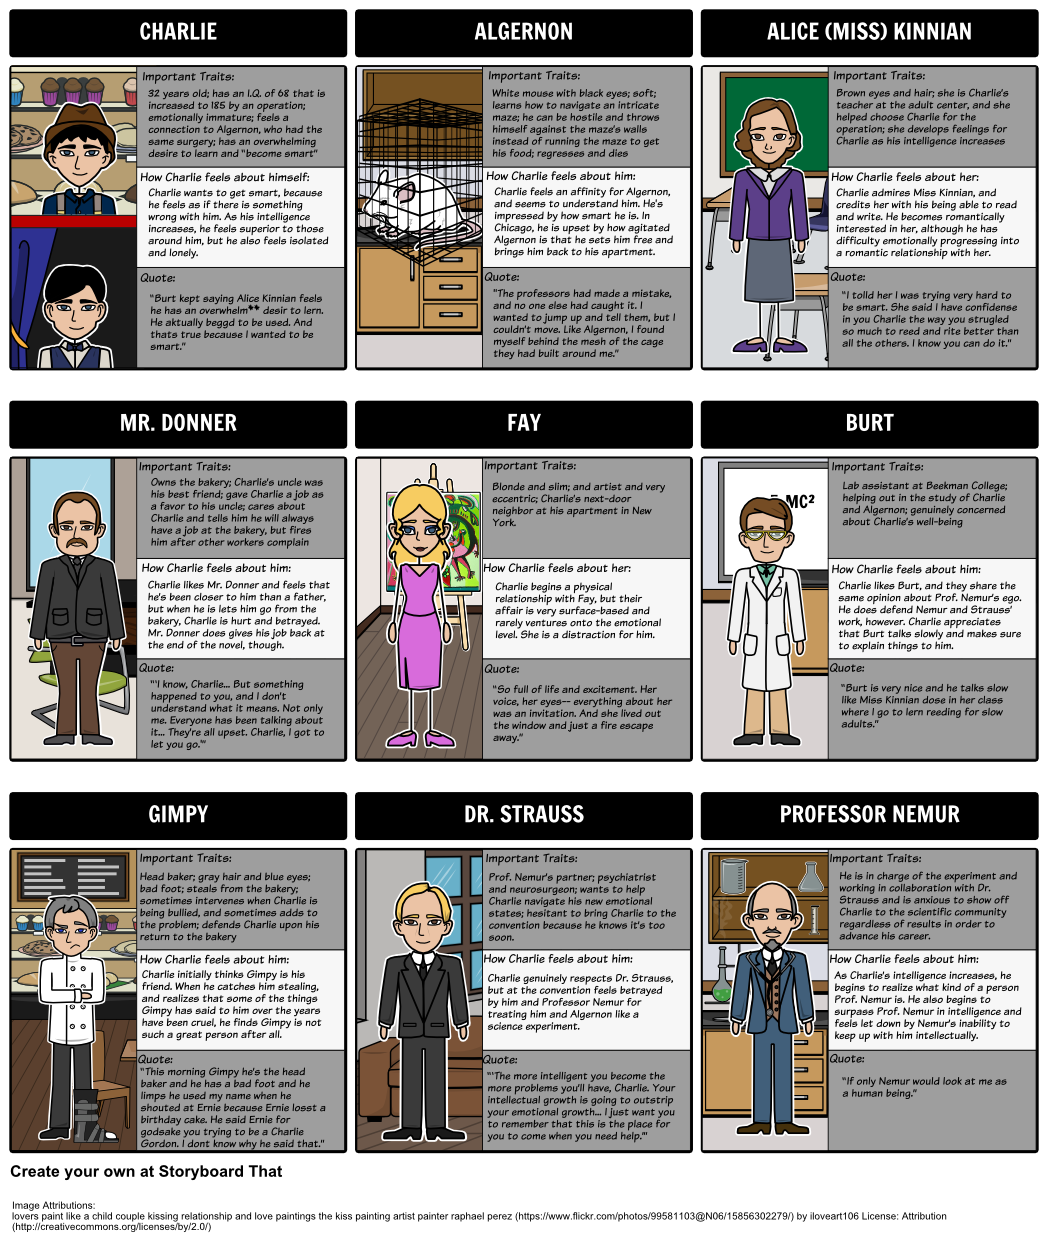 As students read, a storyboard can serve as a helpful